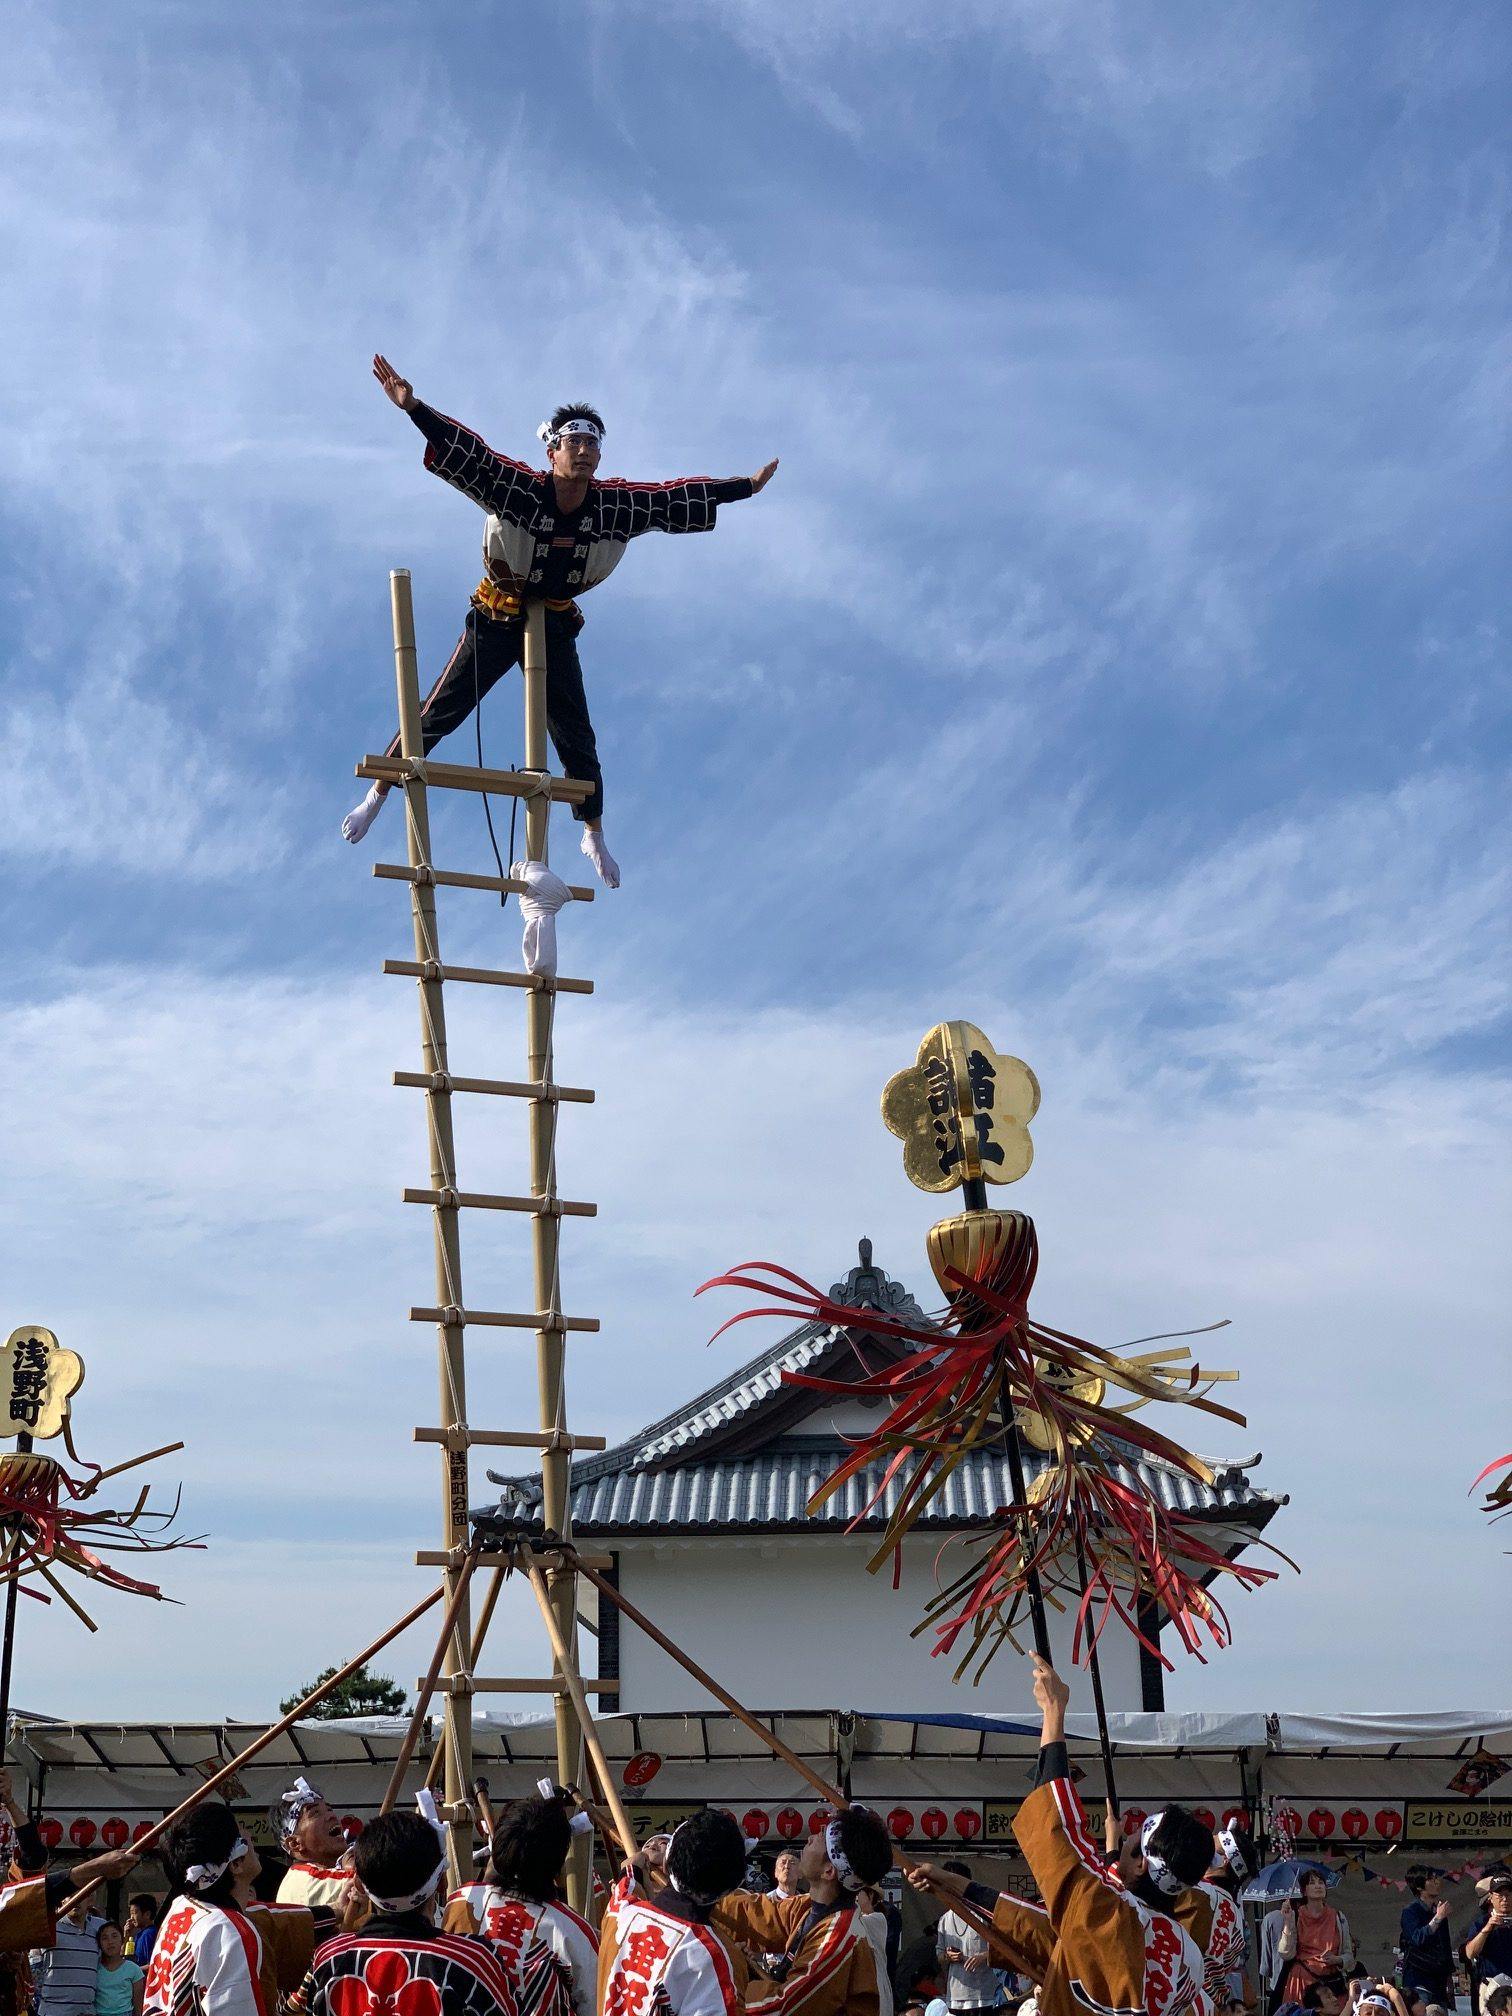 Kagatobi firefighters demonstrate 300 year old acrobatic techniquest at the Hyakumangoku Festival